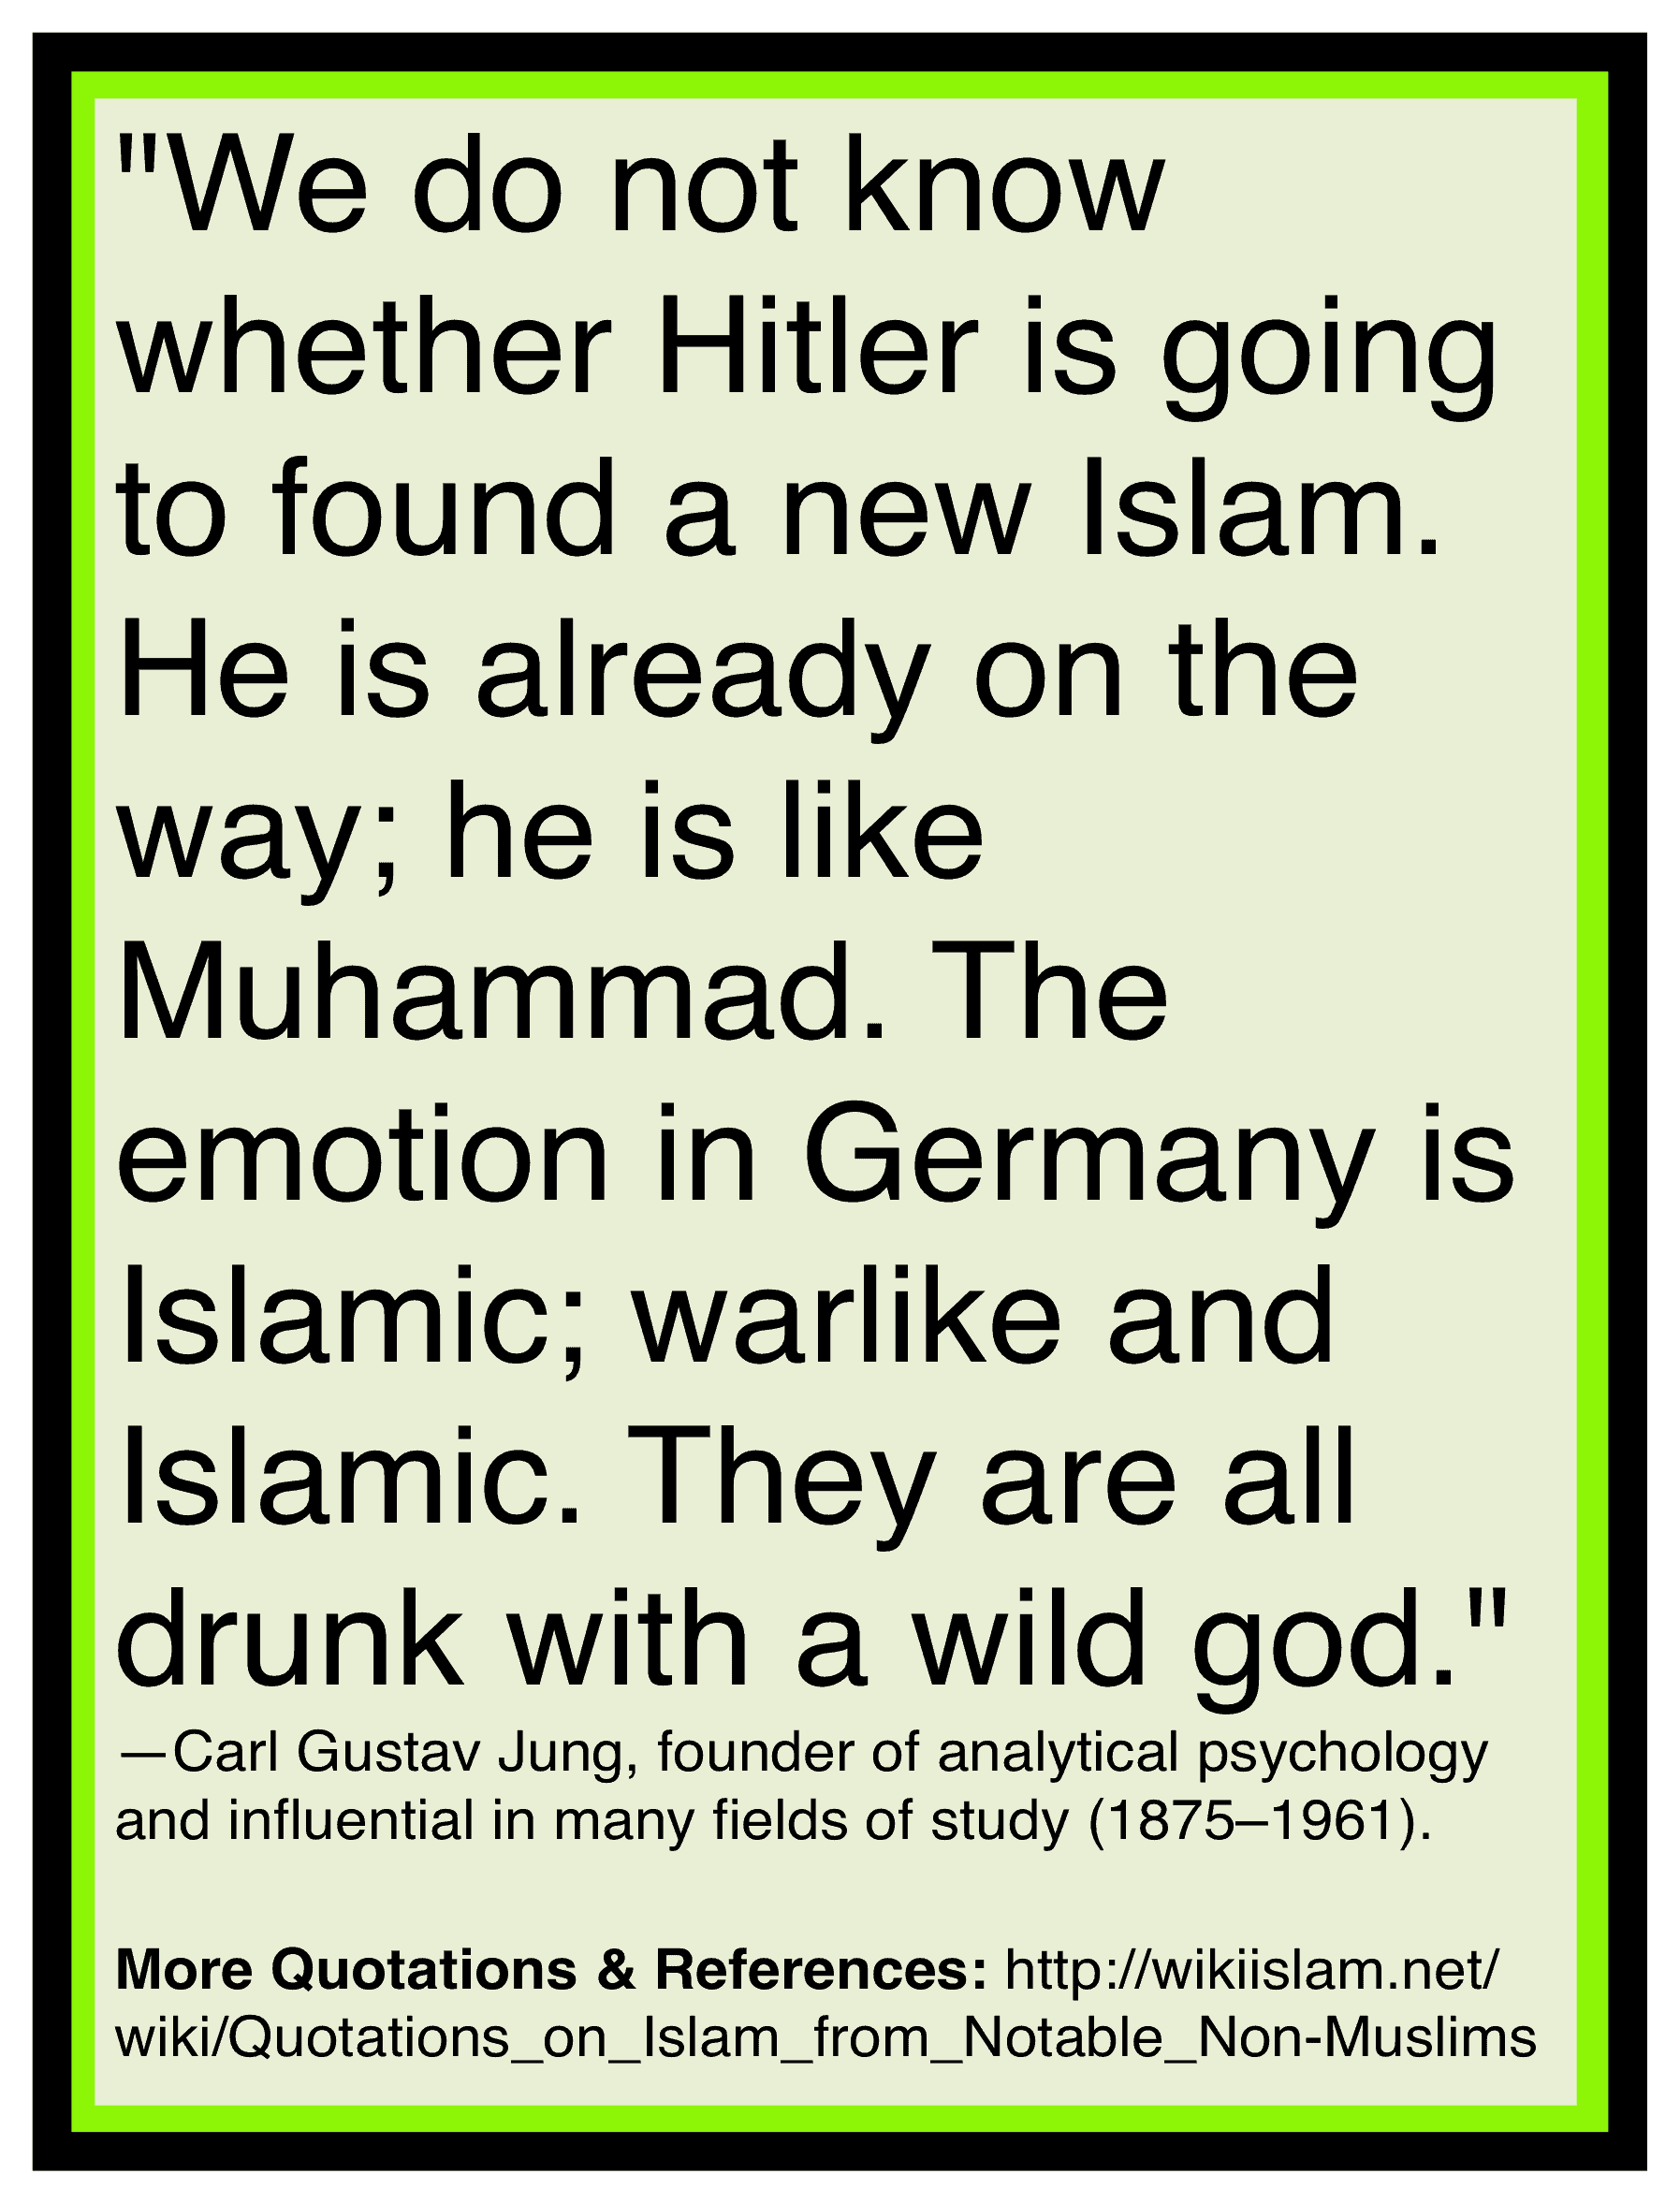 Islam is like nazism